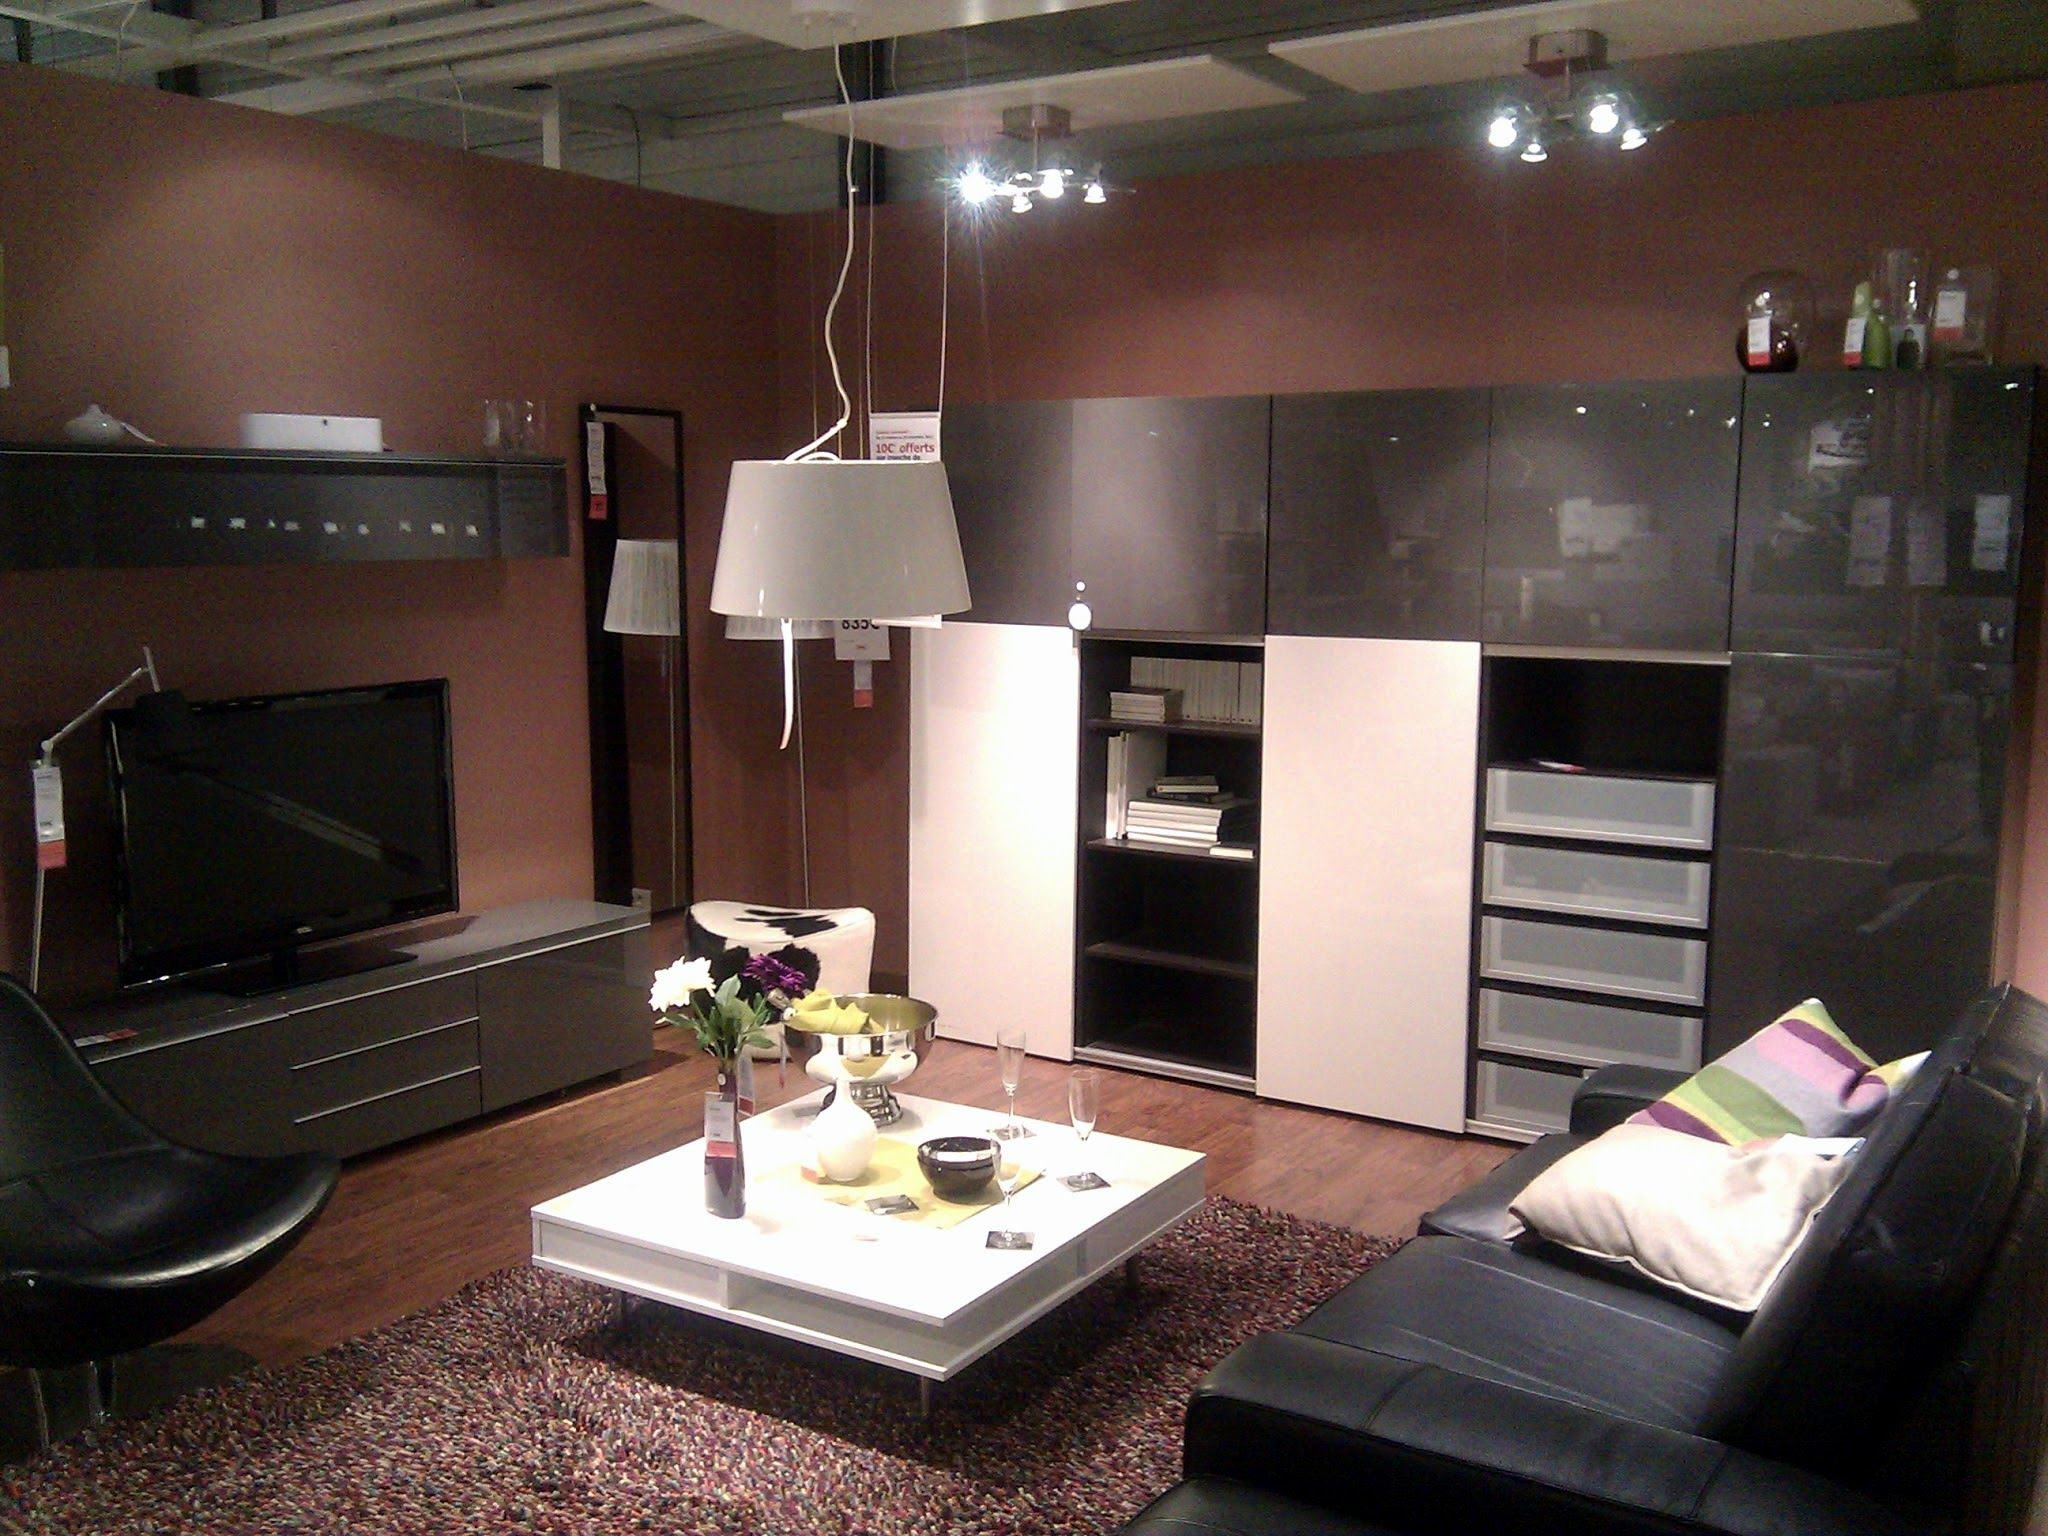 ikea rouen tourville la rivi re france ikea stores franconville france pinterest ikea. Black Bedroom Furniture Sets. Home Design Ideas